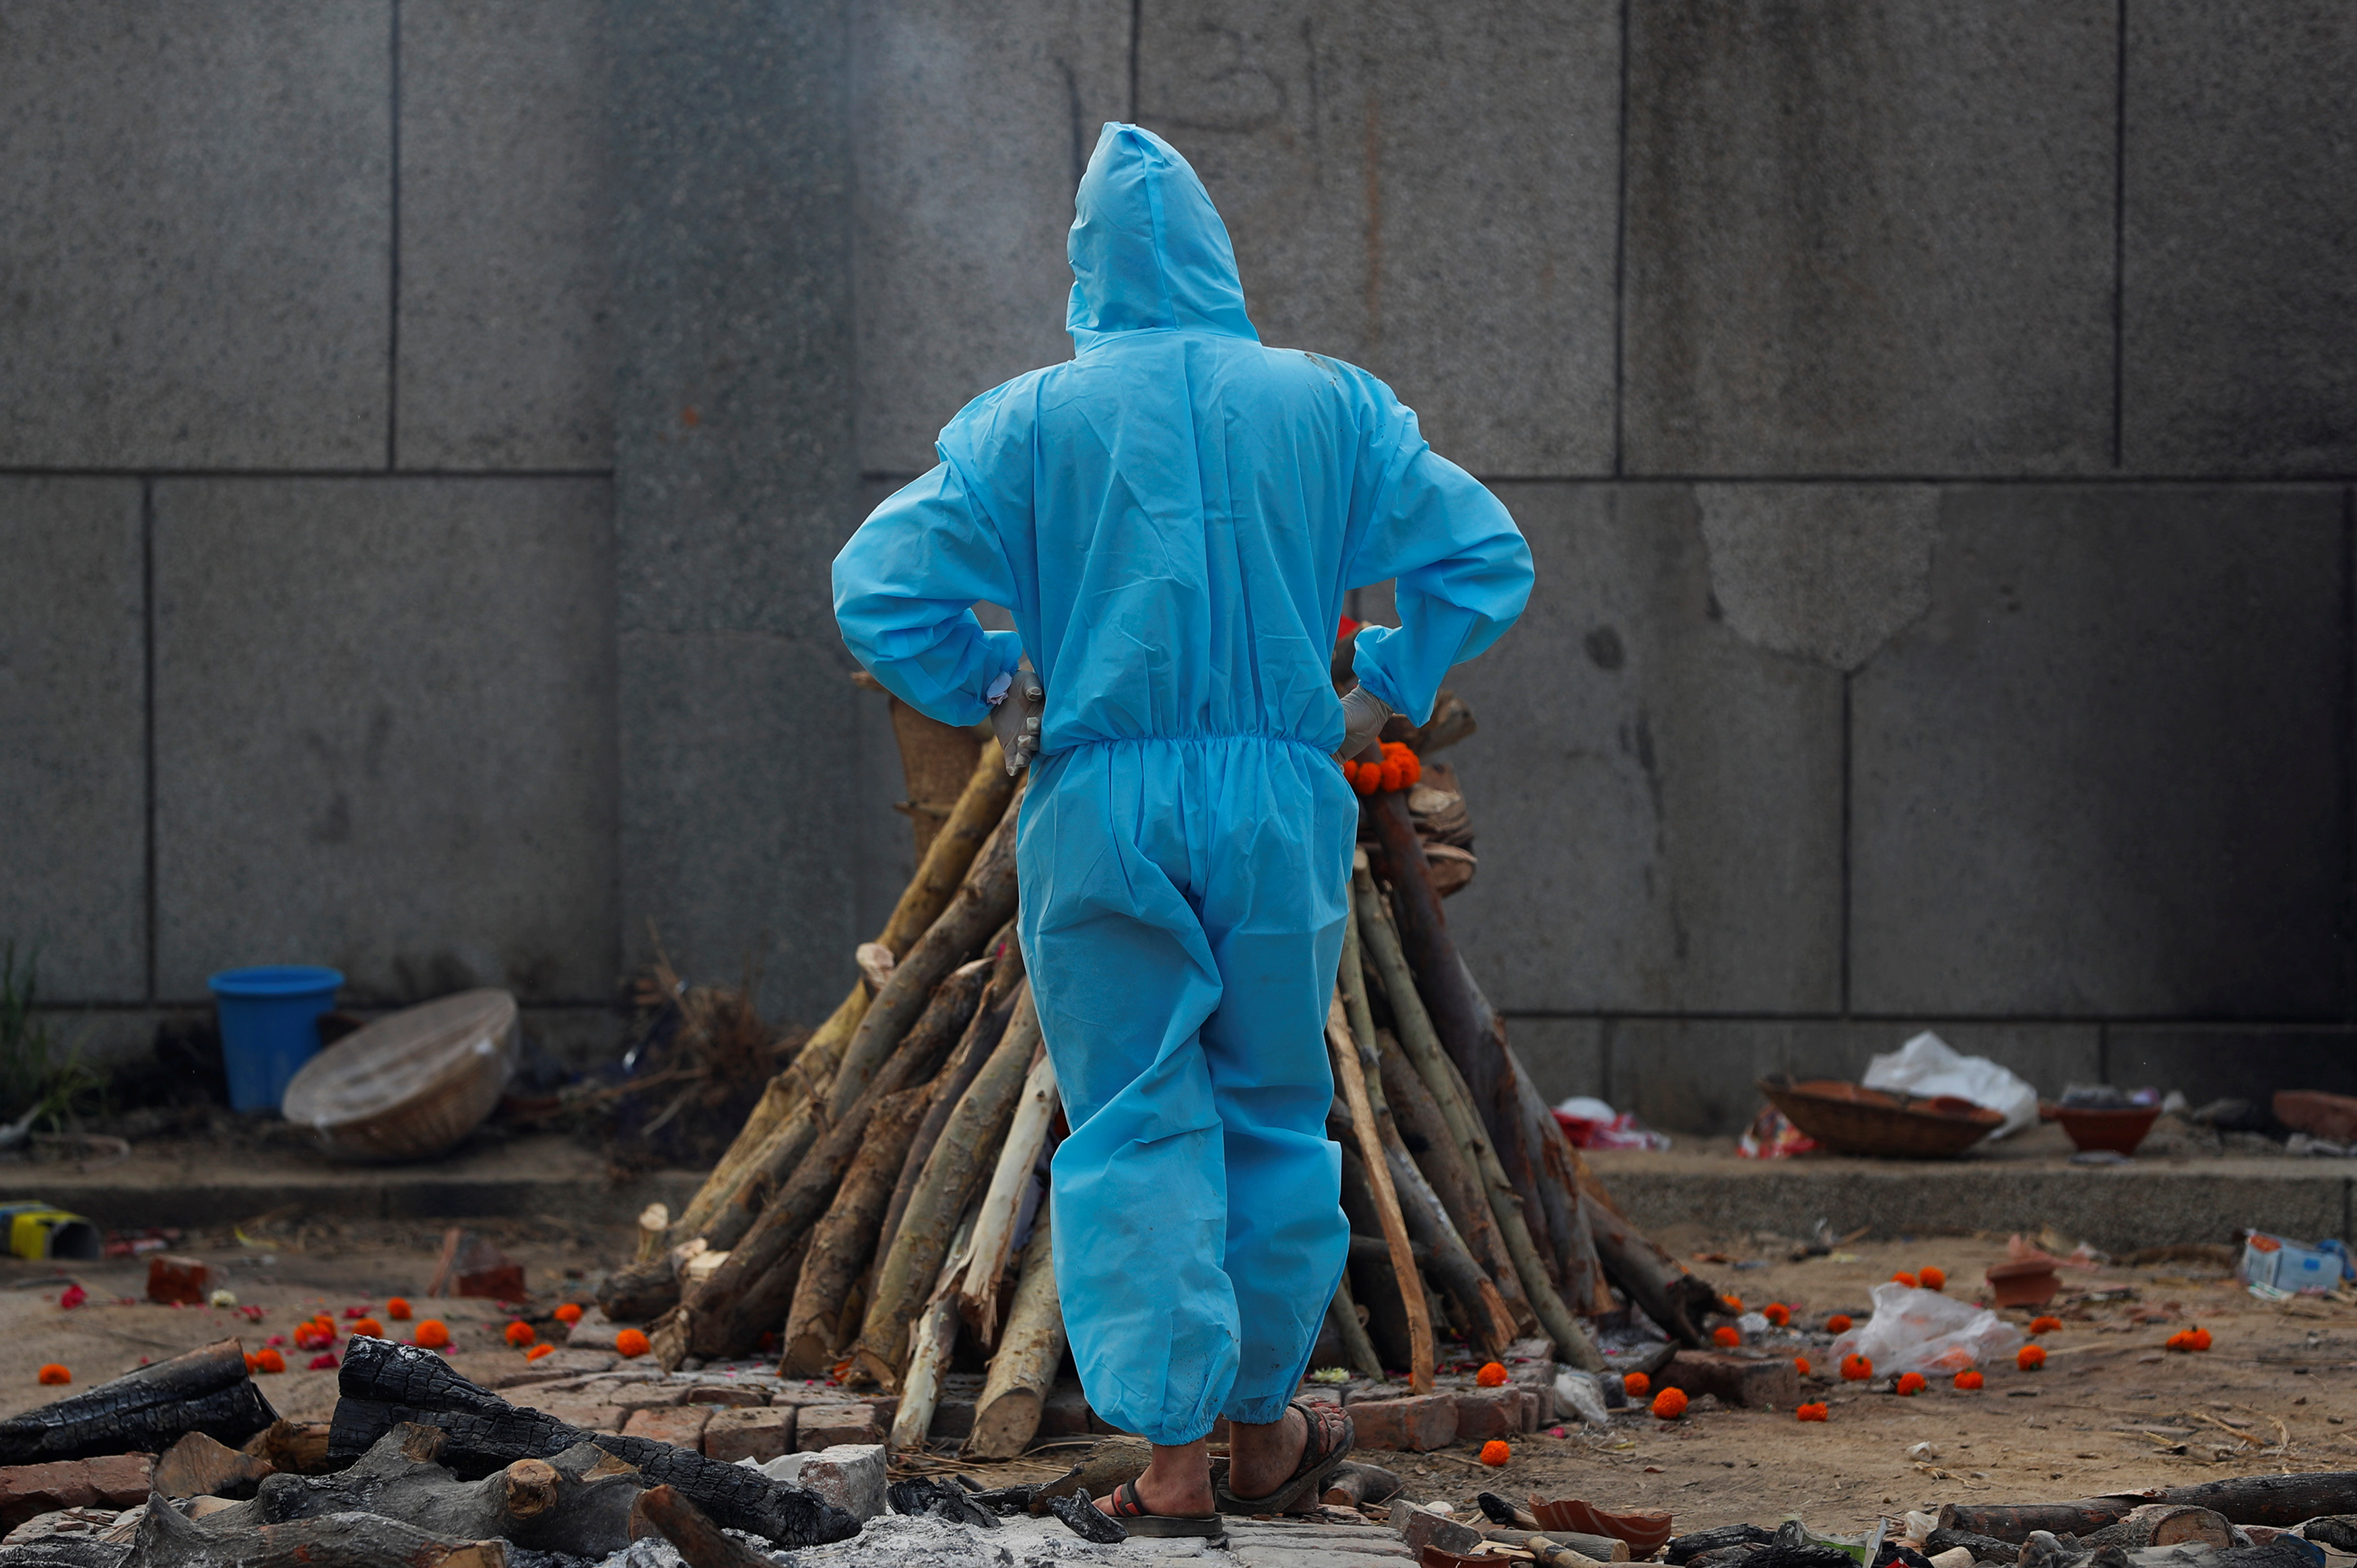 A man wearing personal protective equipment (PPE) stands next to a burning funeral pyre of a relative, who died from the coronavirus disease (COVID-19), before his cremation, at a crematorium in New Delhi, India May 5, 2021. REUTERS/Adnan Abidi